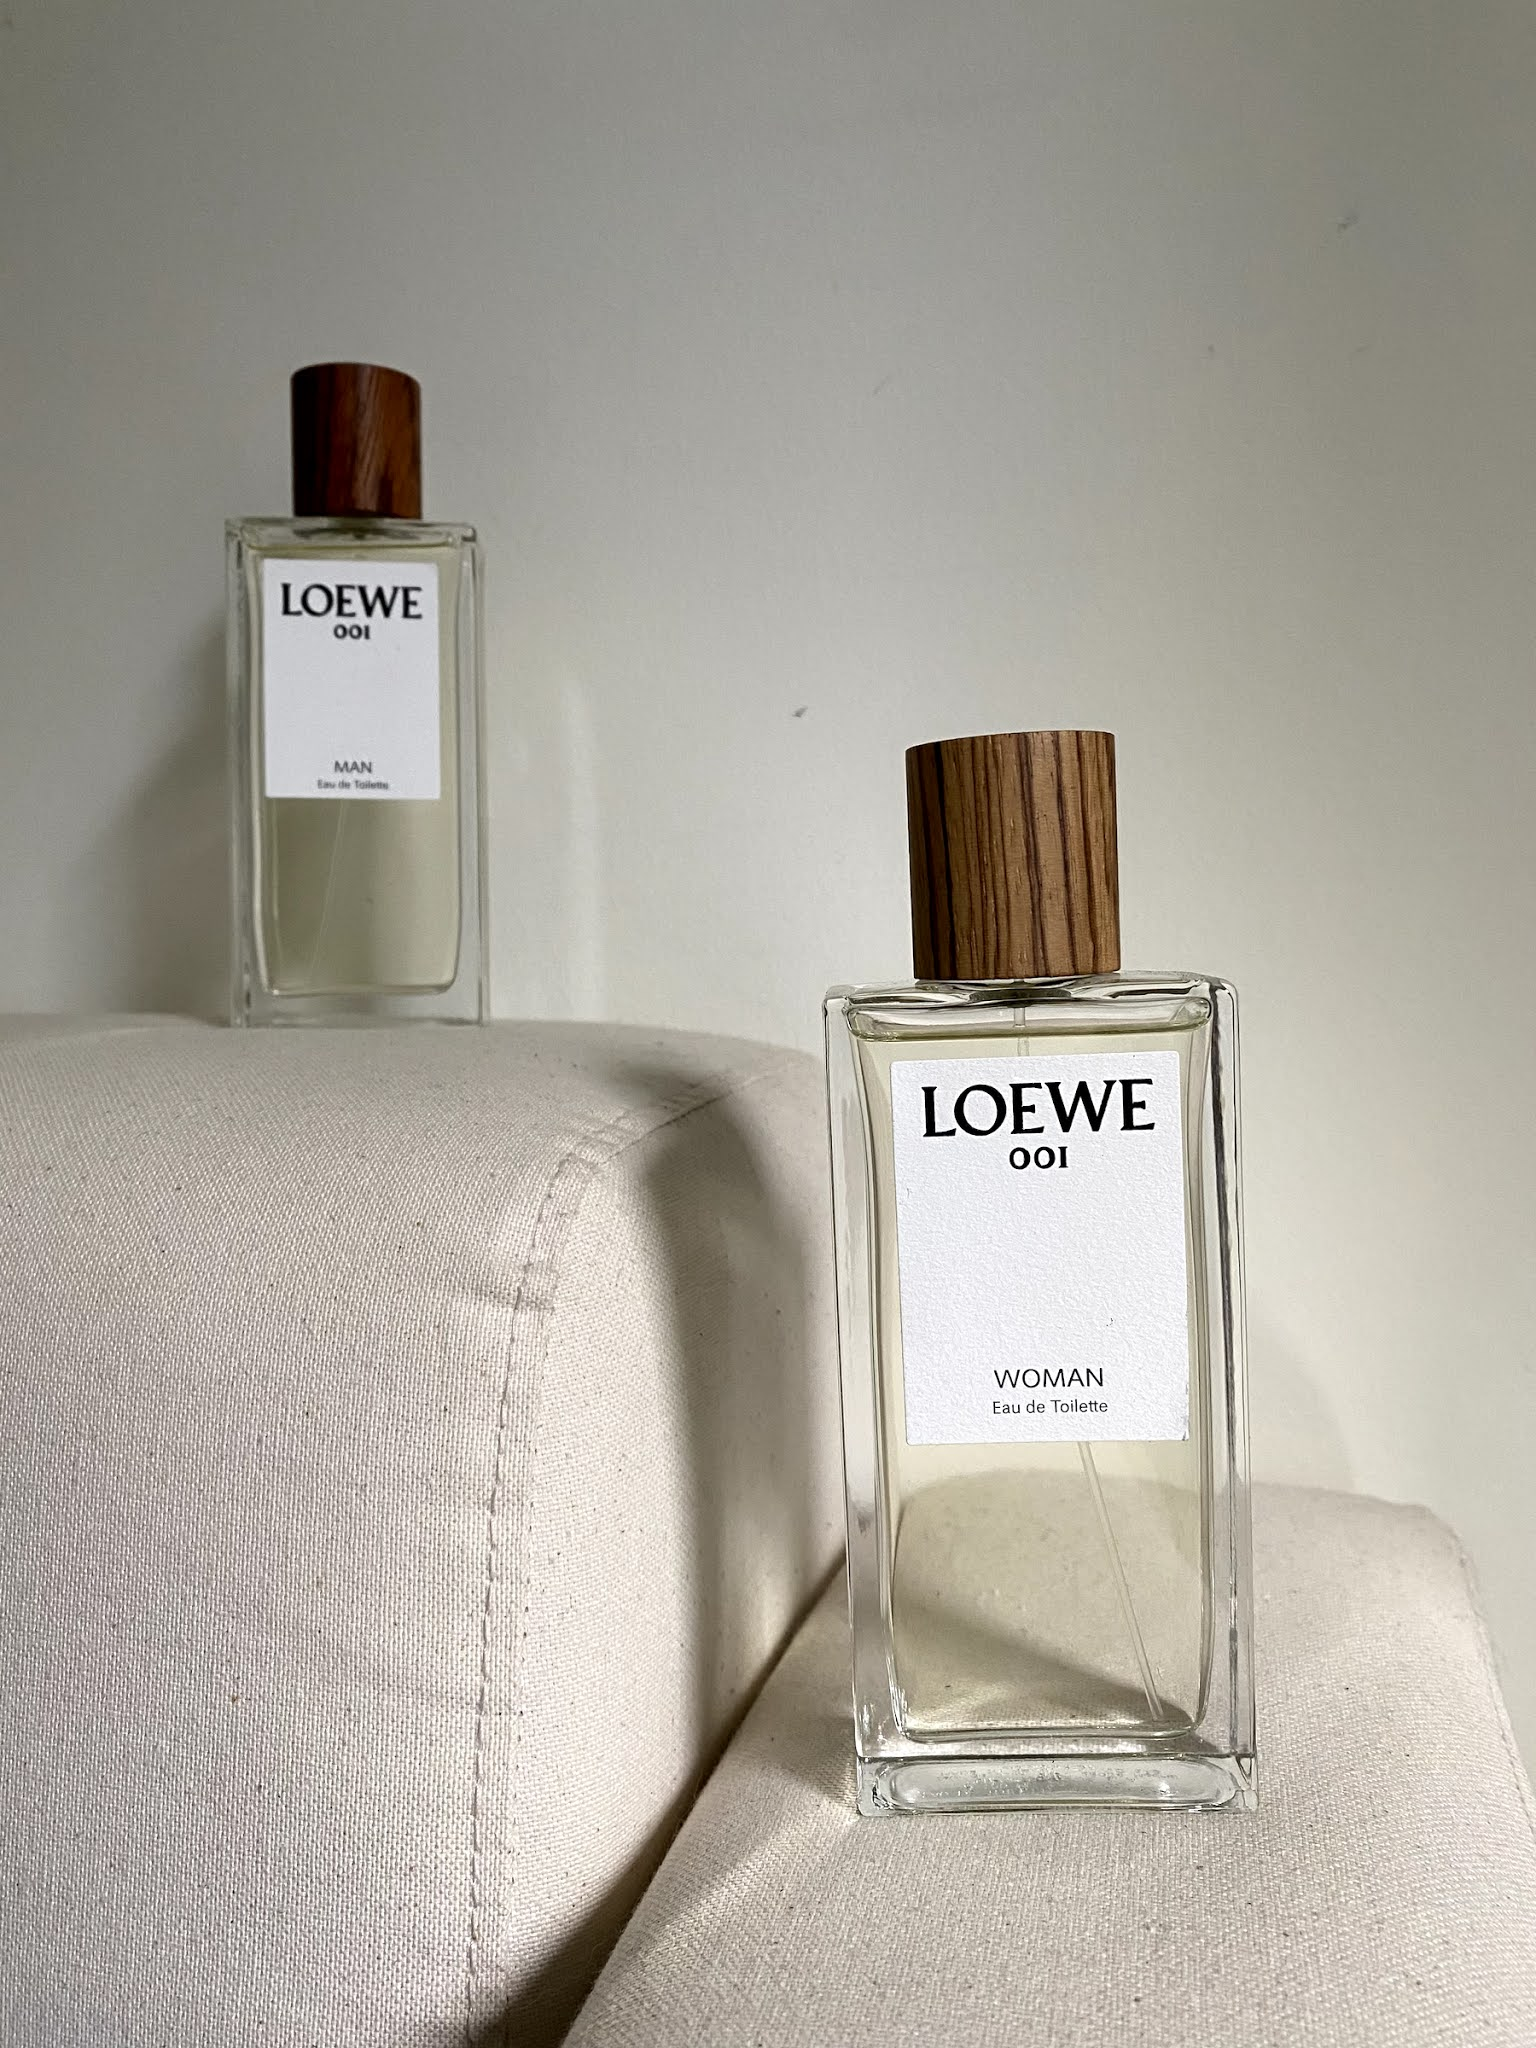 Loewe fragrance 001 woman man review